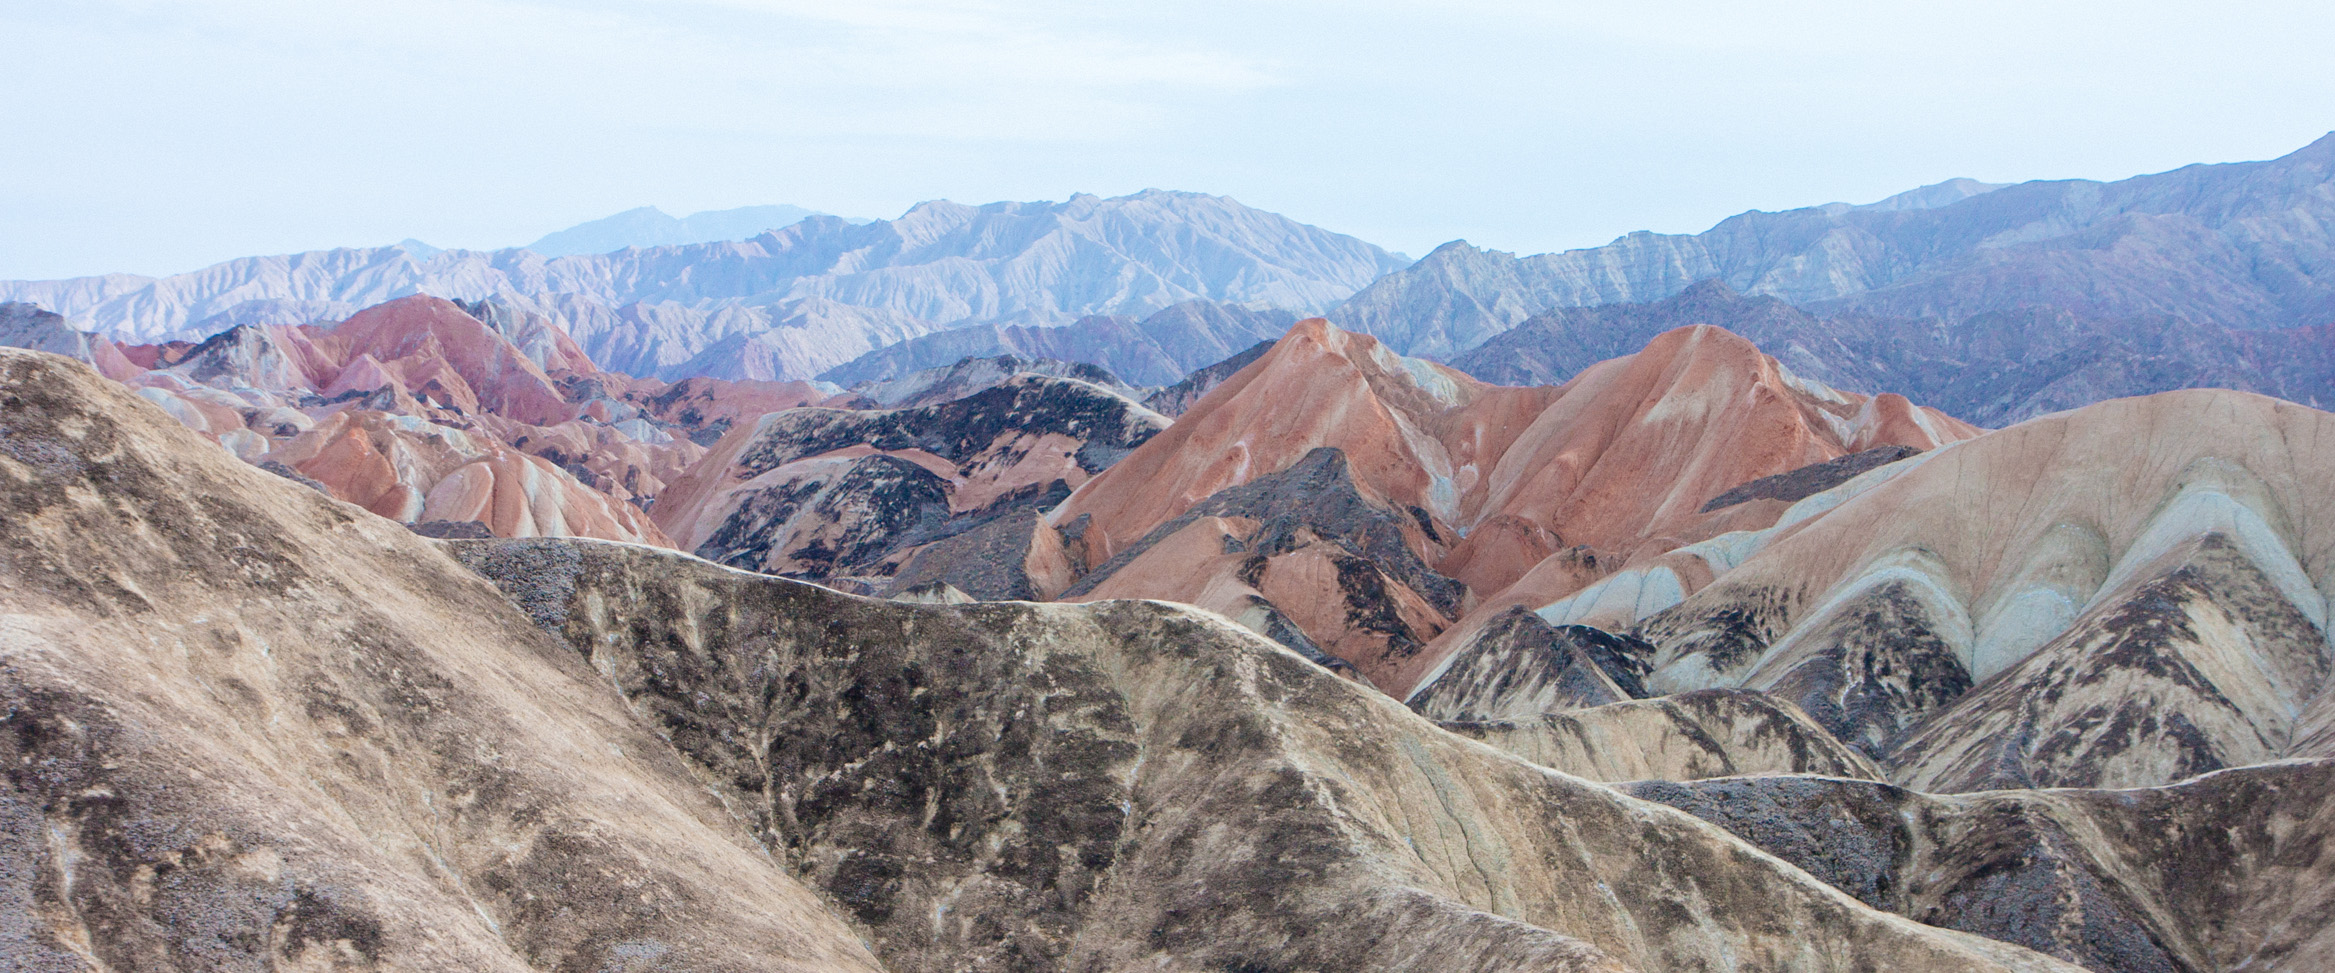 A natural wonder of sandy colours in Zhangye Danxia landform, China.